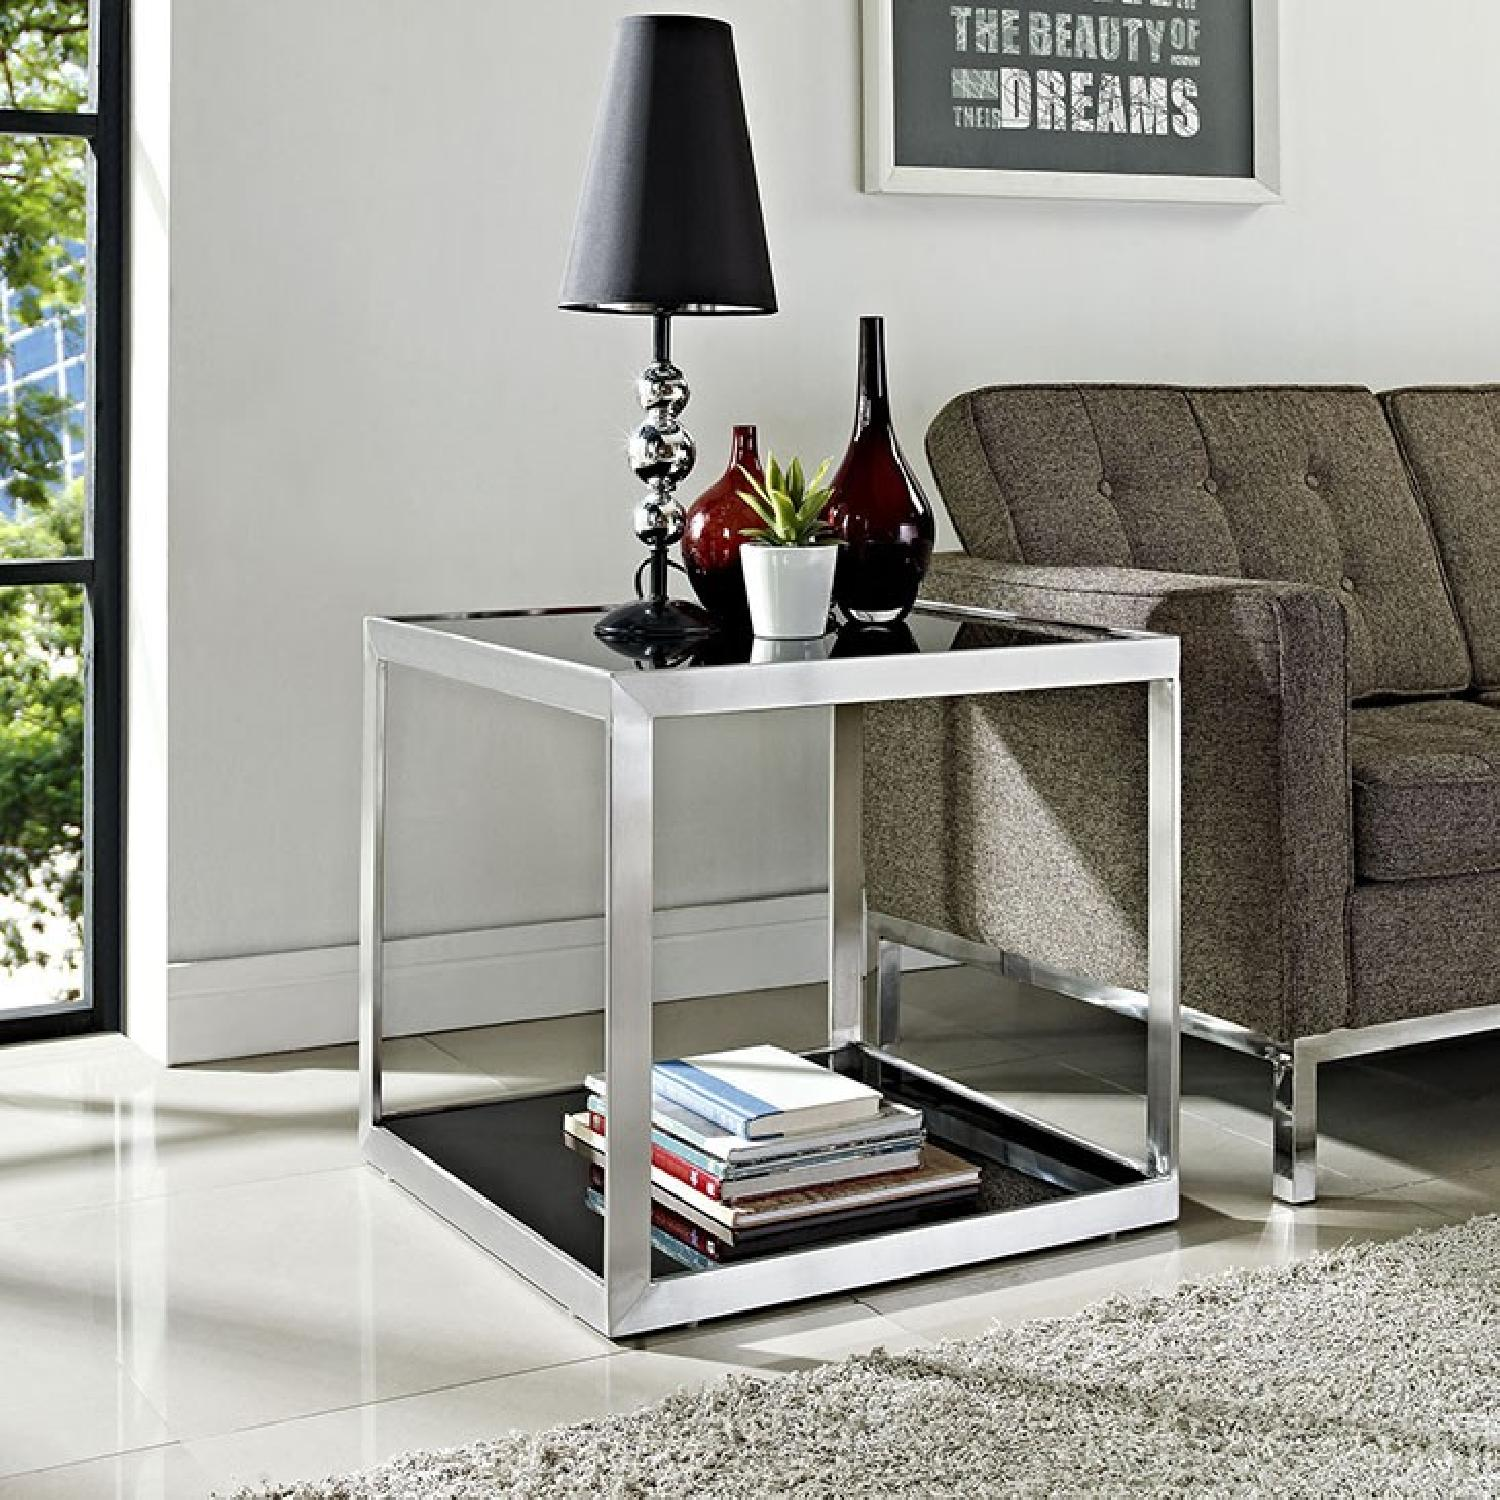 Metal w/ Tinted Black Glass End Table - image-4